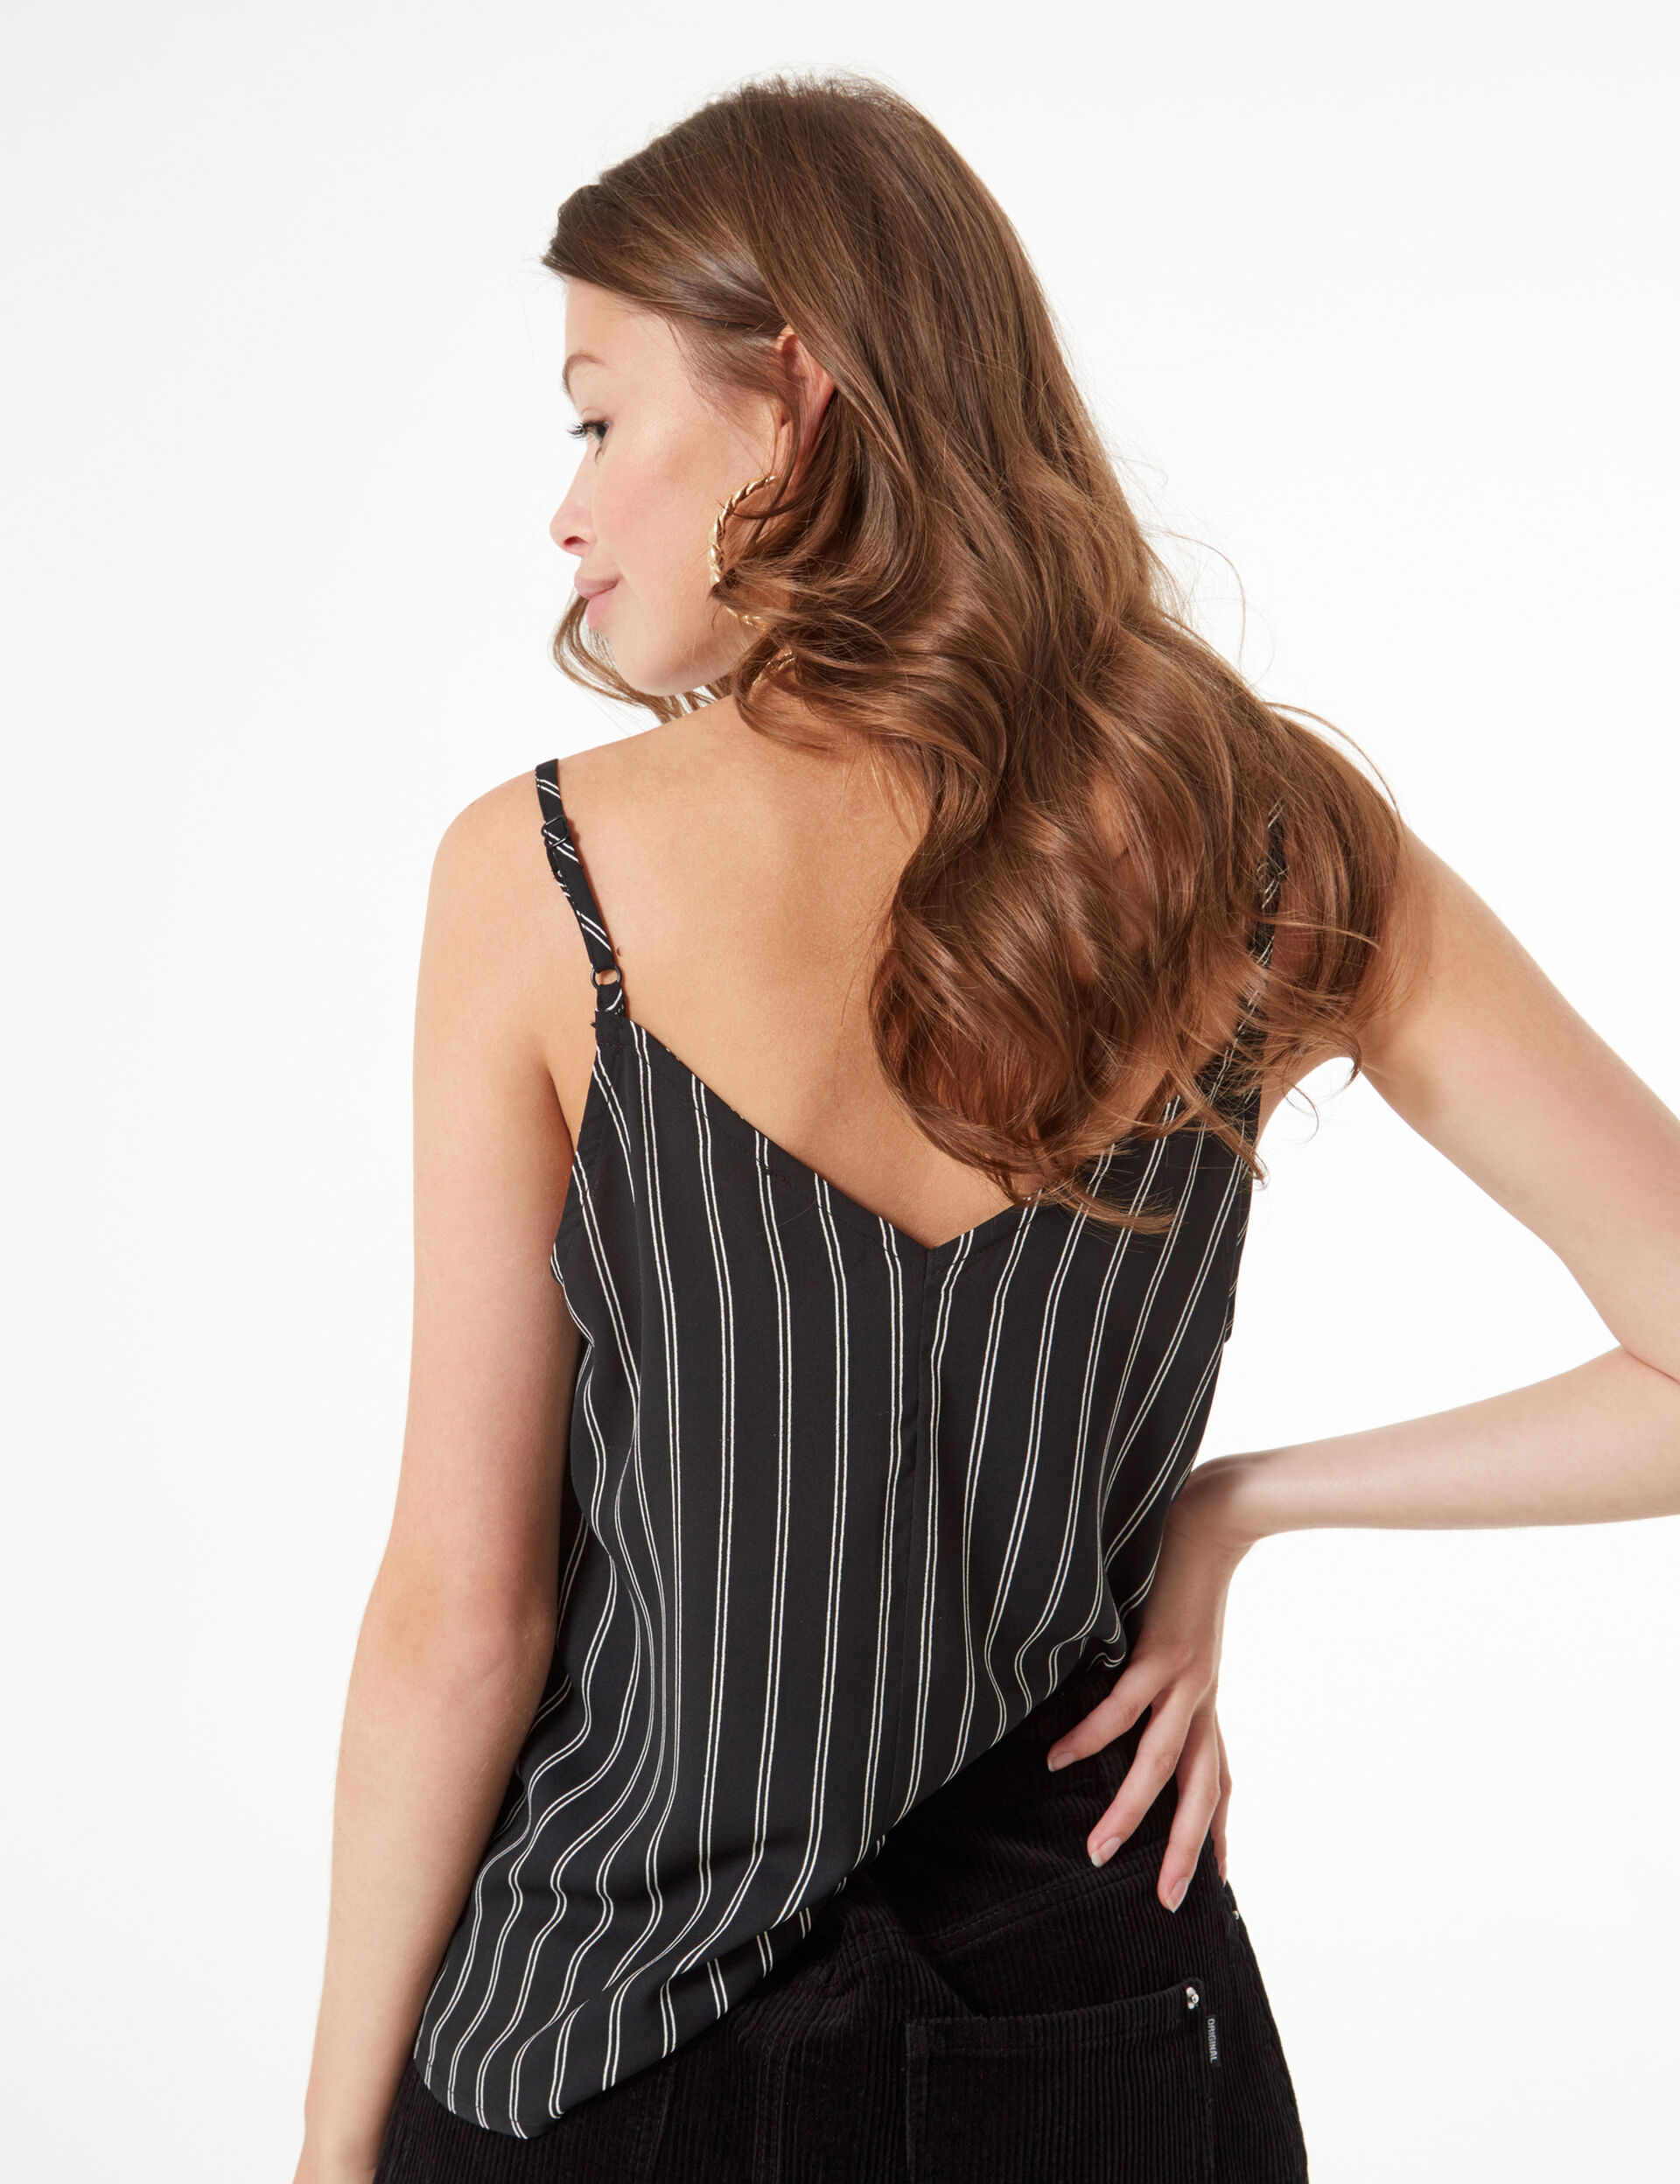 Striped and lacy camisole